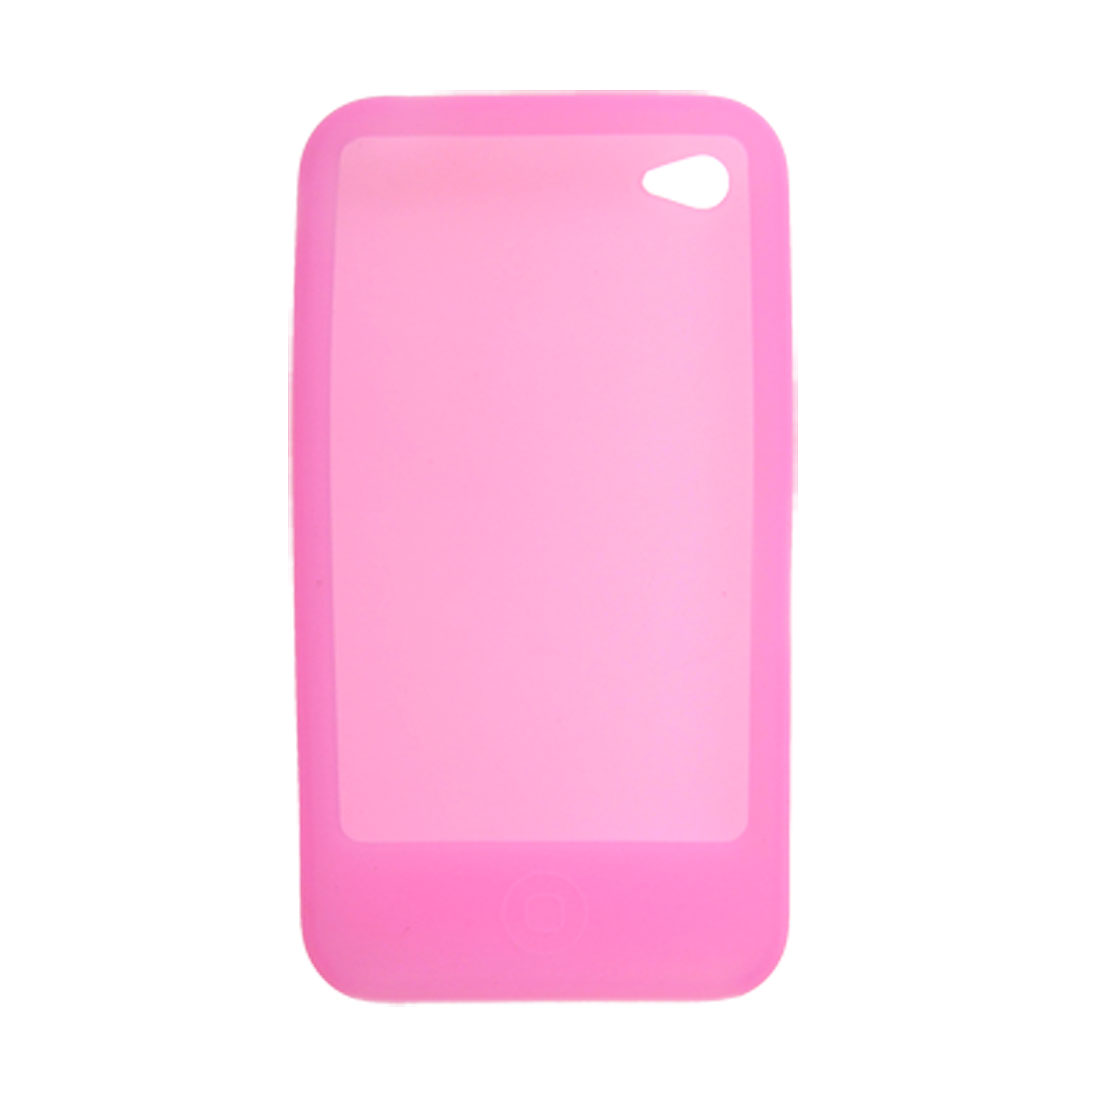 Silicone Skin Protective Case for iPhone 4 4G Pink